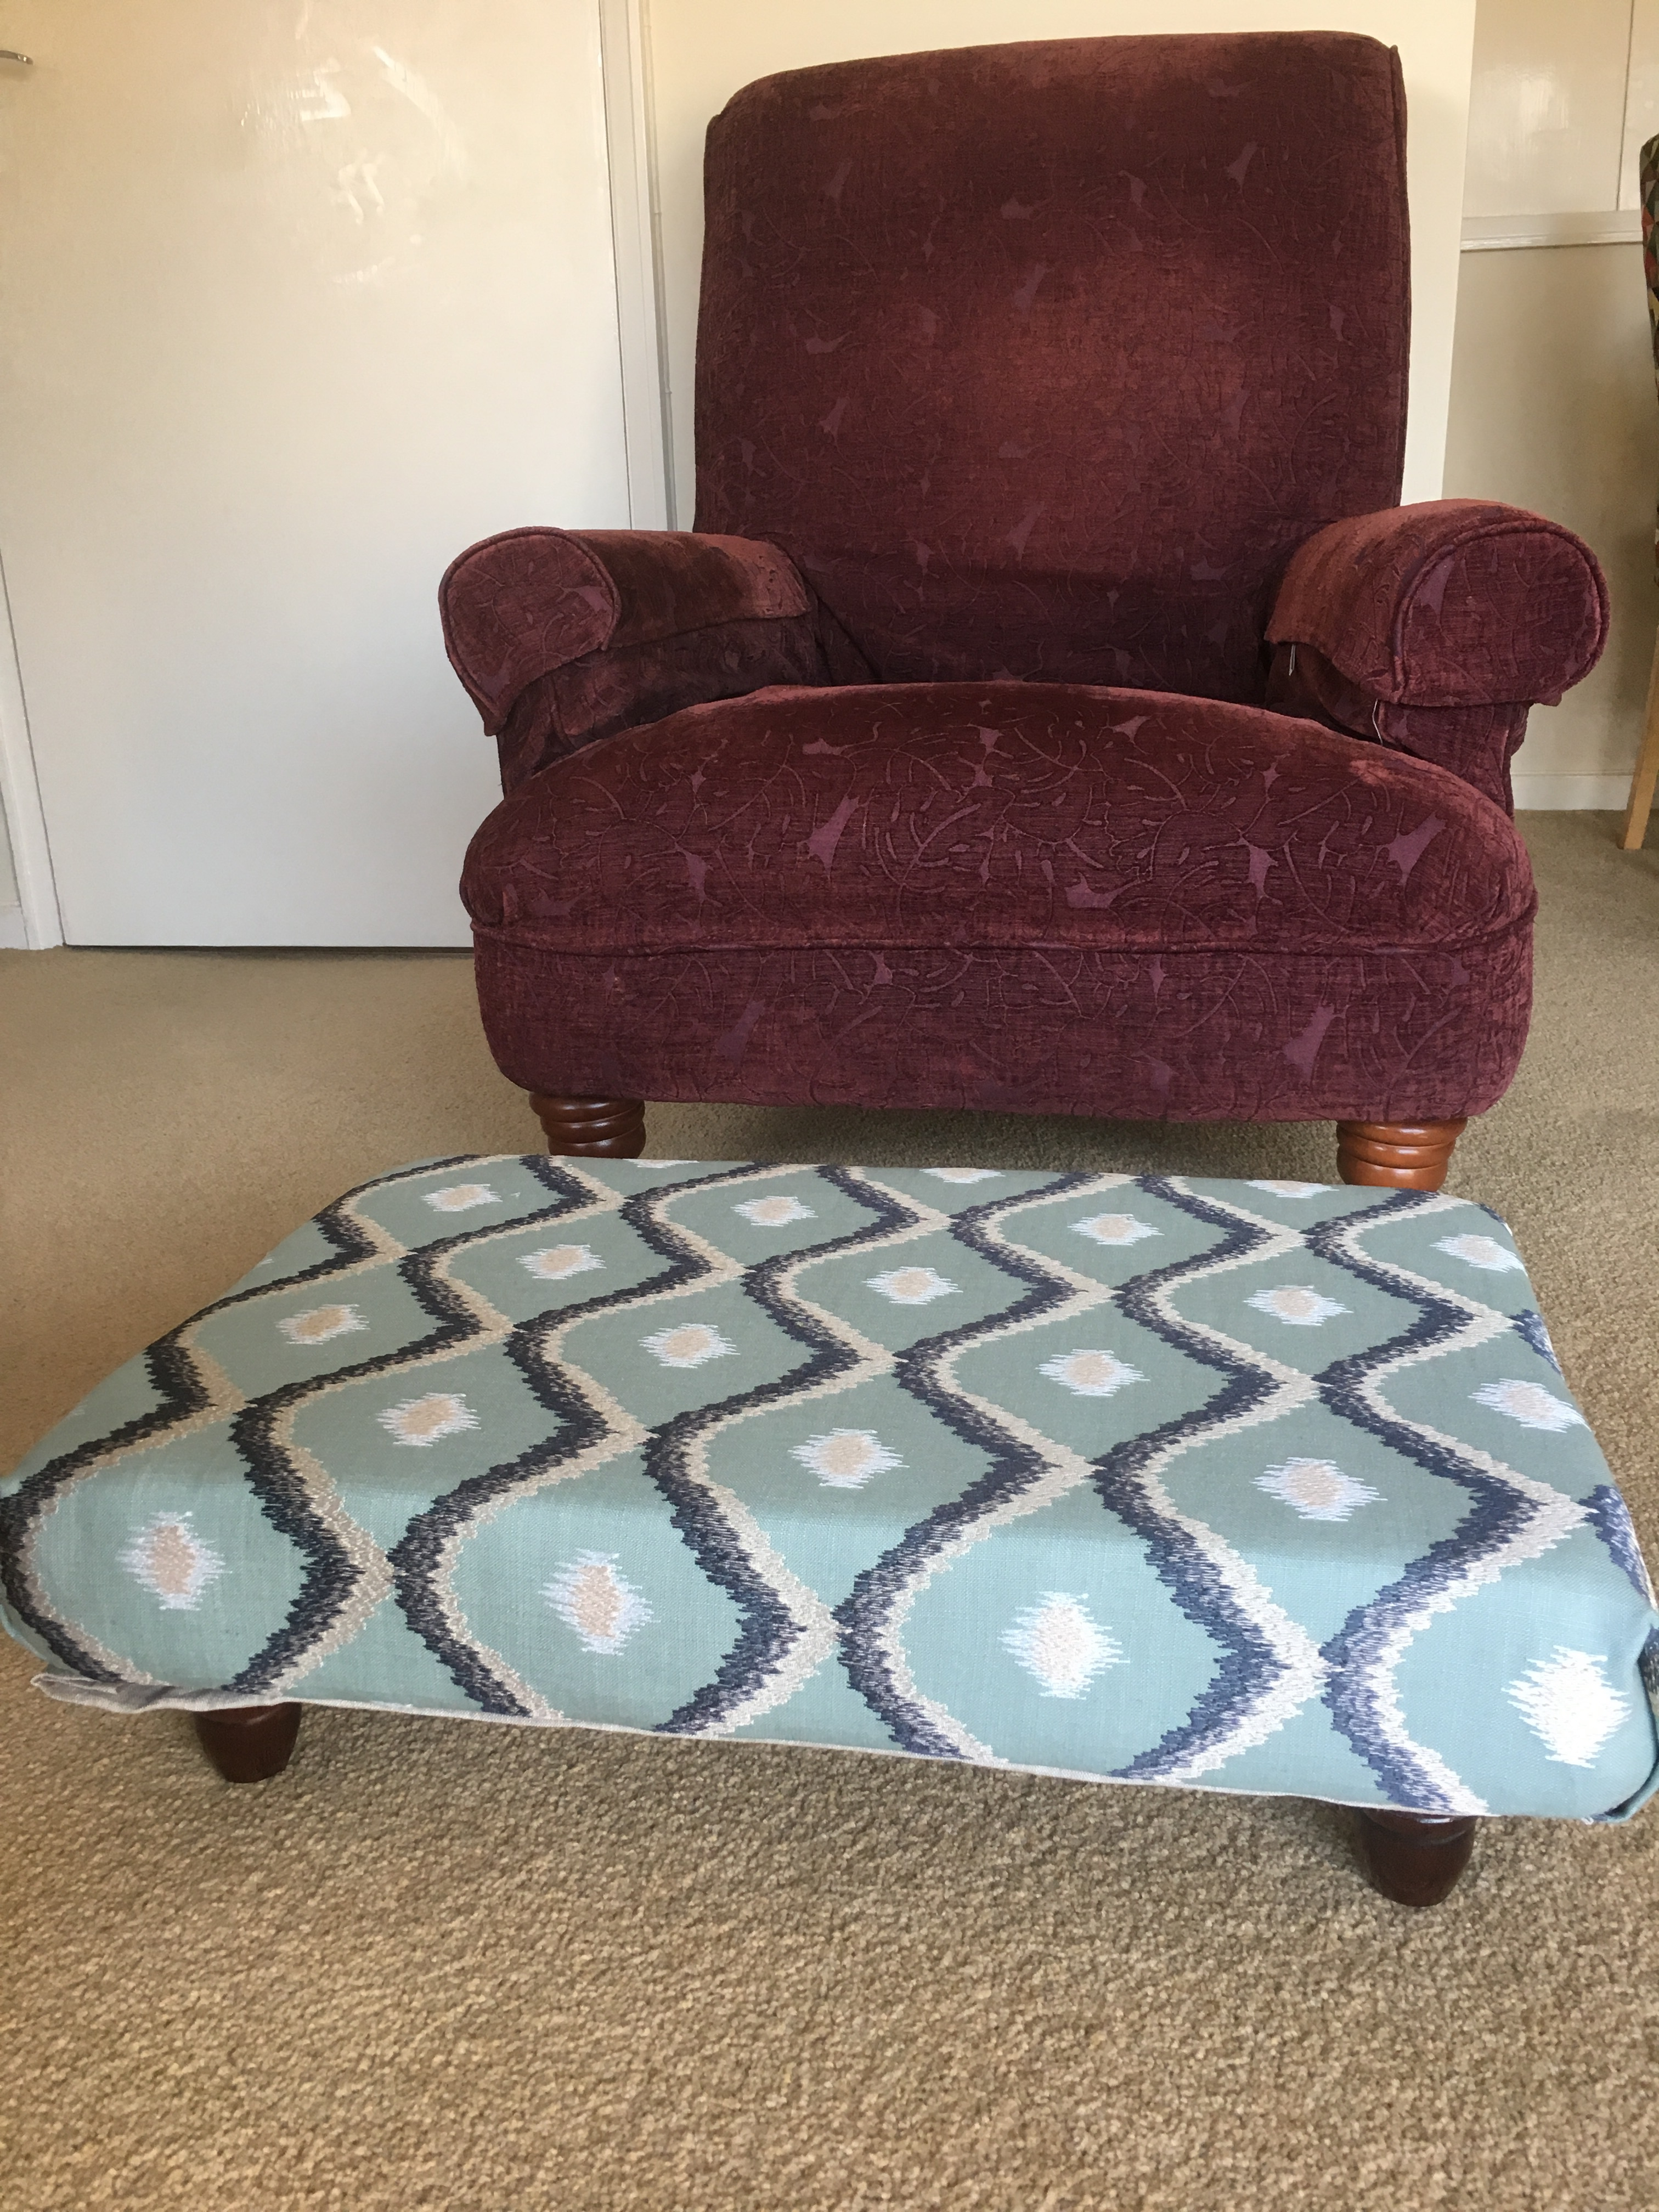 Designed and made by hand to order using interior designer fabric and wooden legs to match clients' furniture.